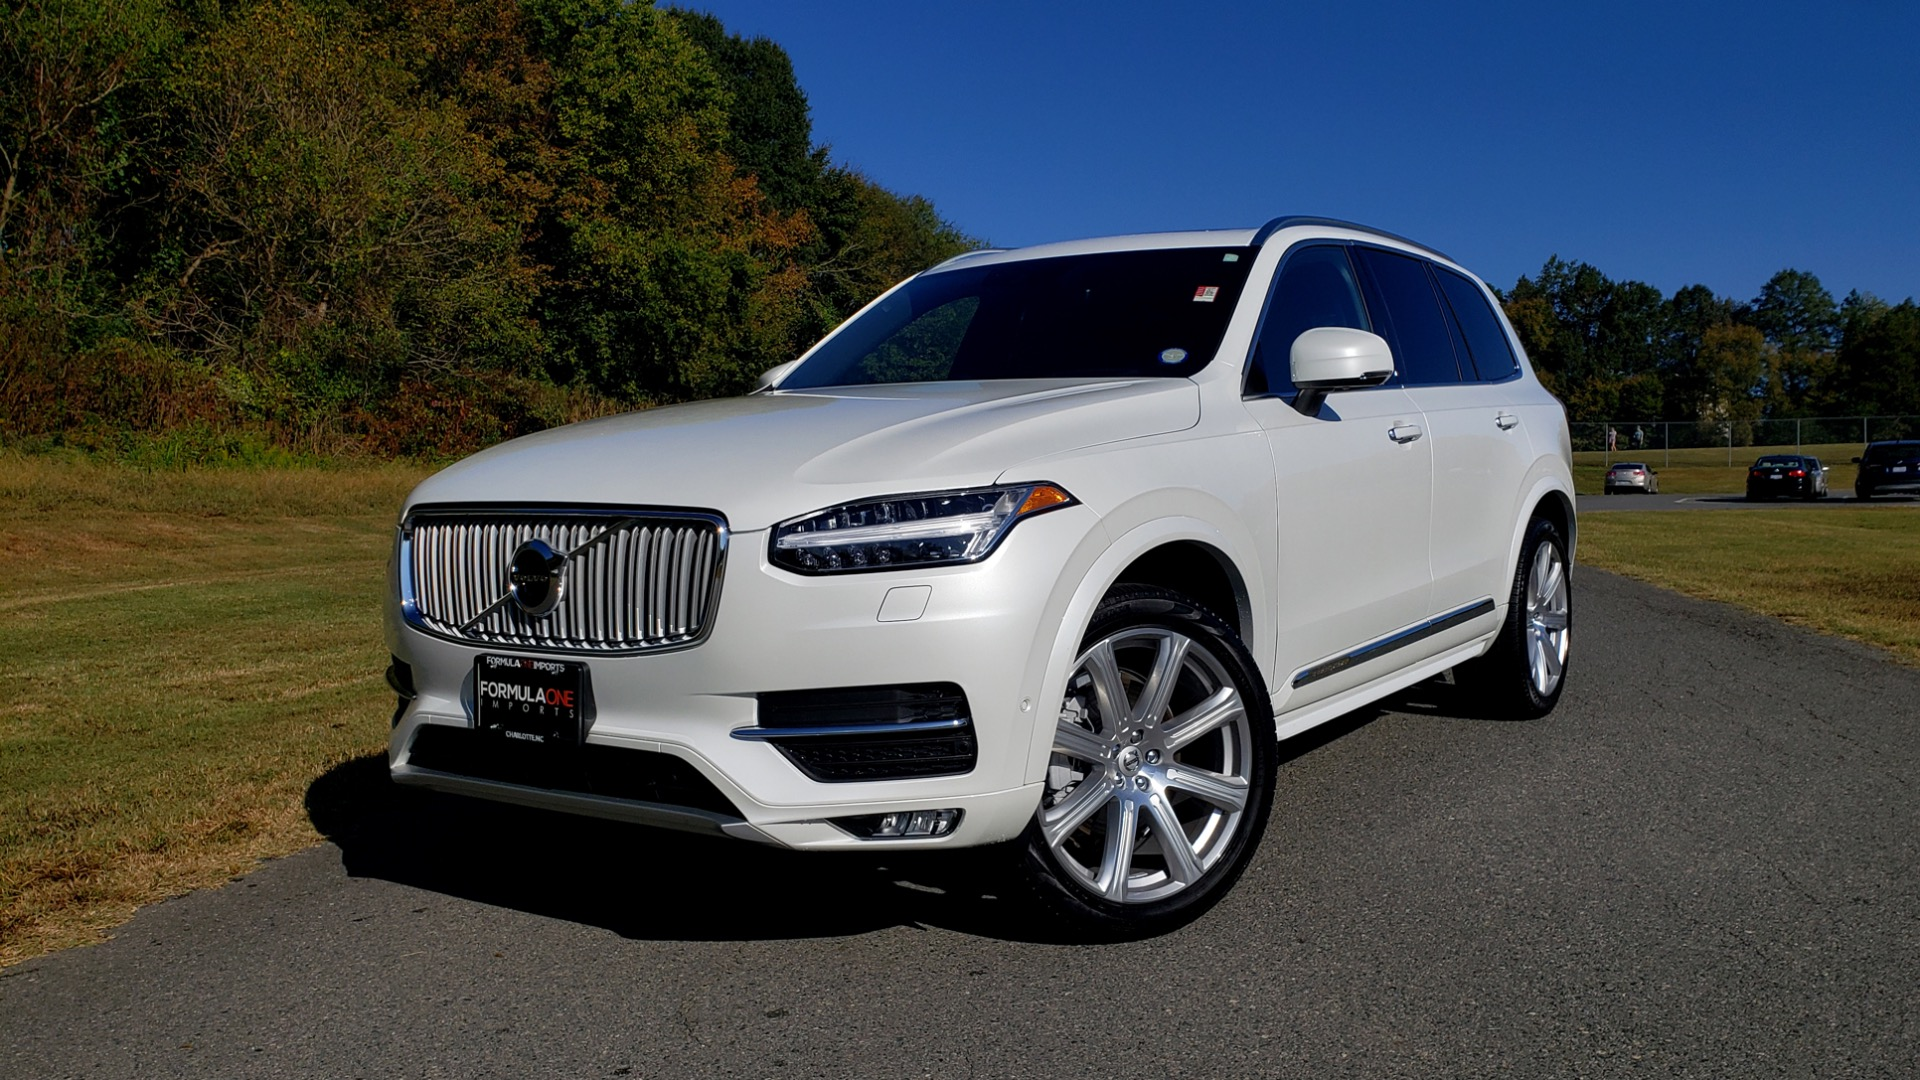 Used 2017 Volvo XC90 INSCRIPTION / AWD / NAV / SUNROOF / 3-ROW / CAMERA for sale Sold at Formula Imports in Charlotte NC 28227 9